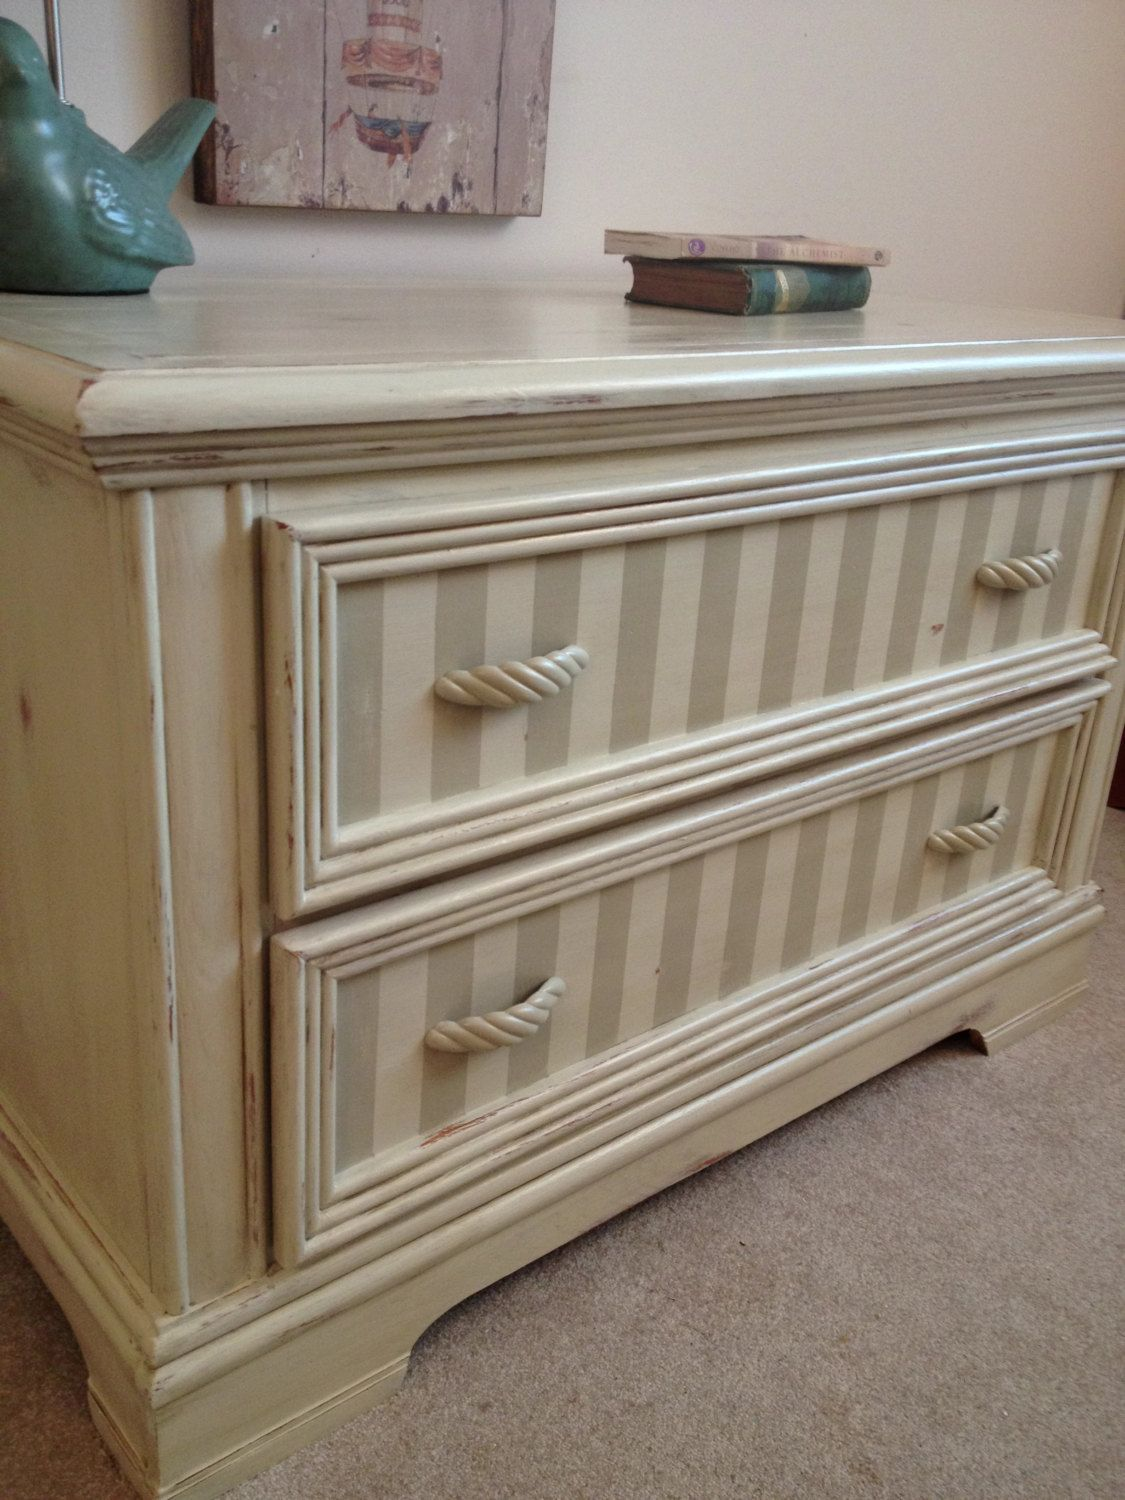 french distressed furniture. Chic Cream Dresser Chest- French Country, Shabby Chic, Rustic, Distressed, Painted Furniture - Love The Stripes! Distressed W